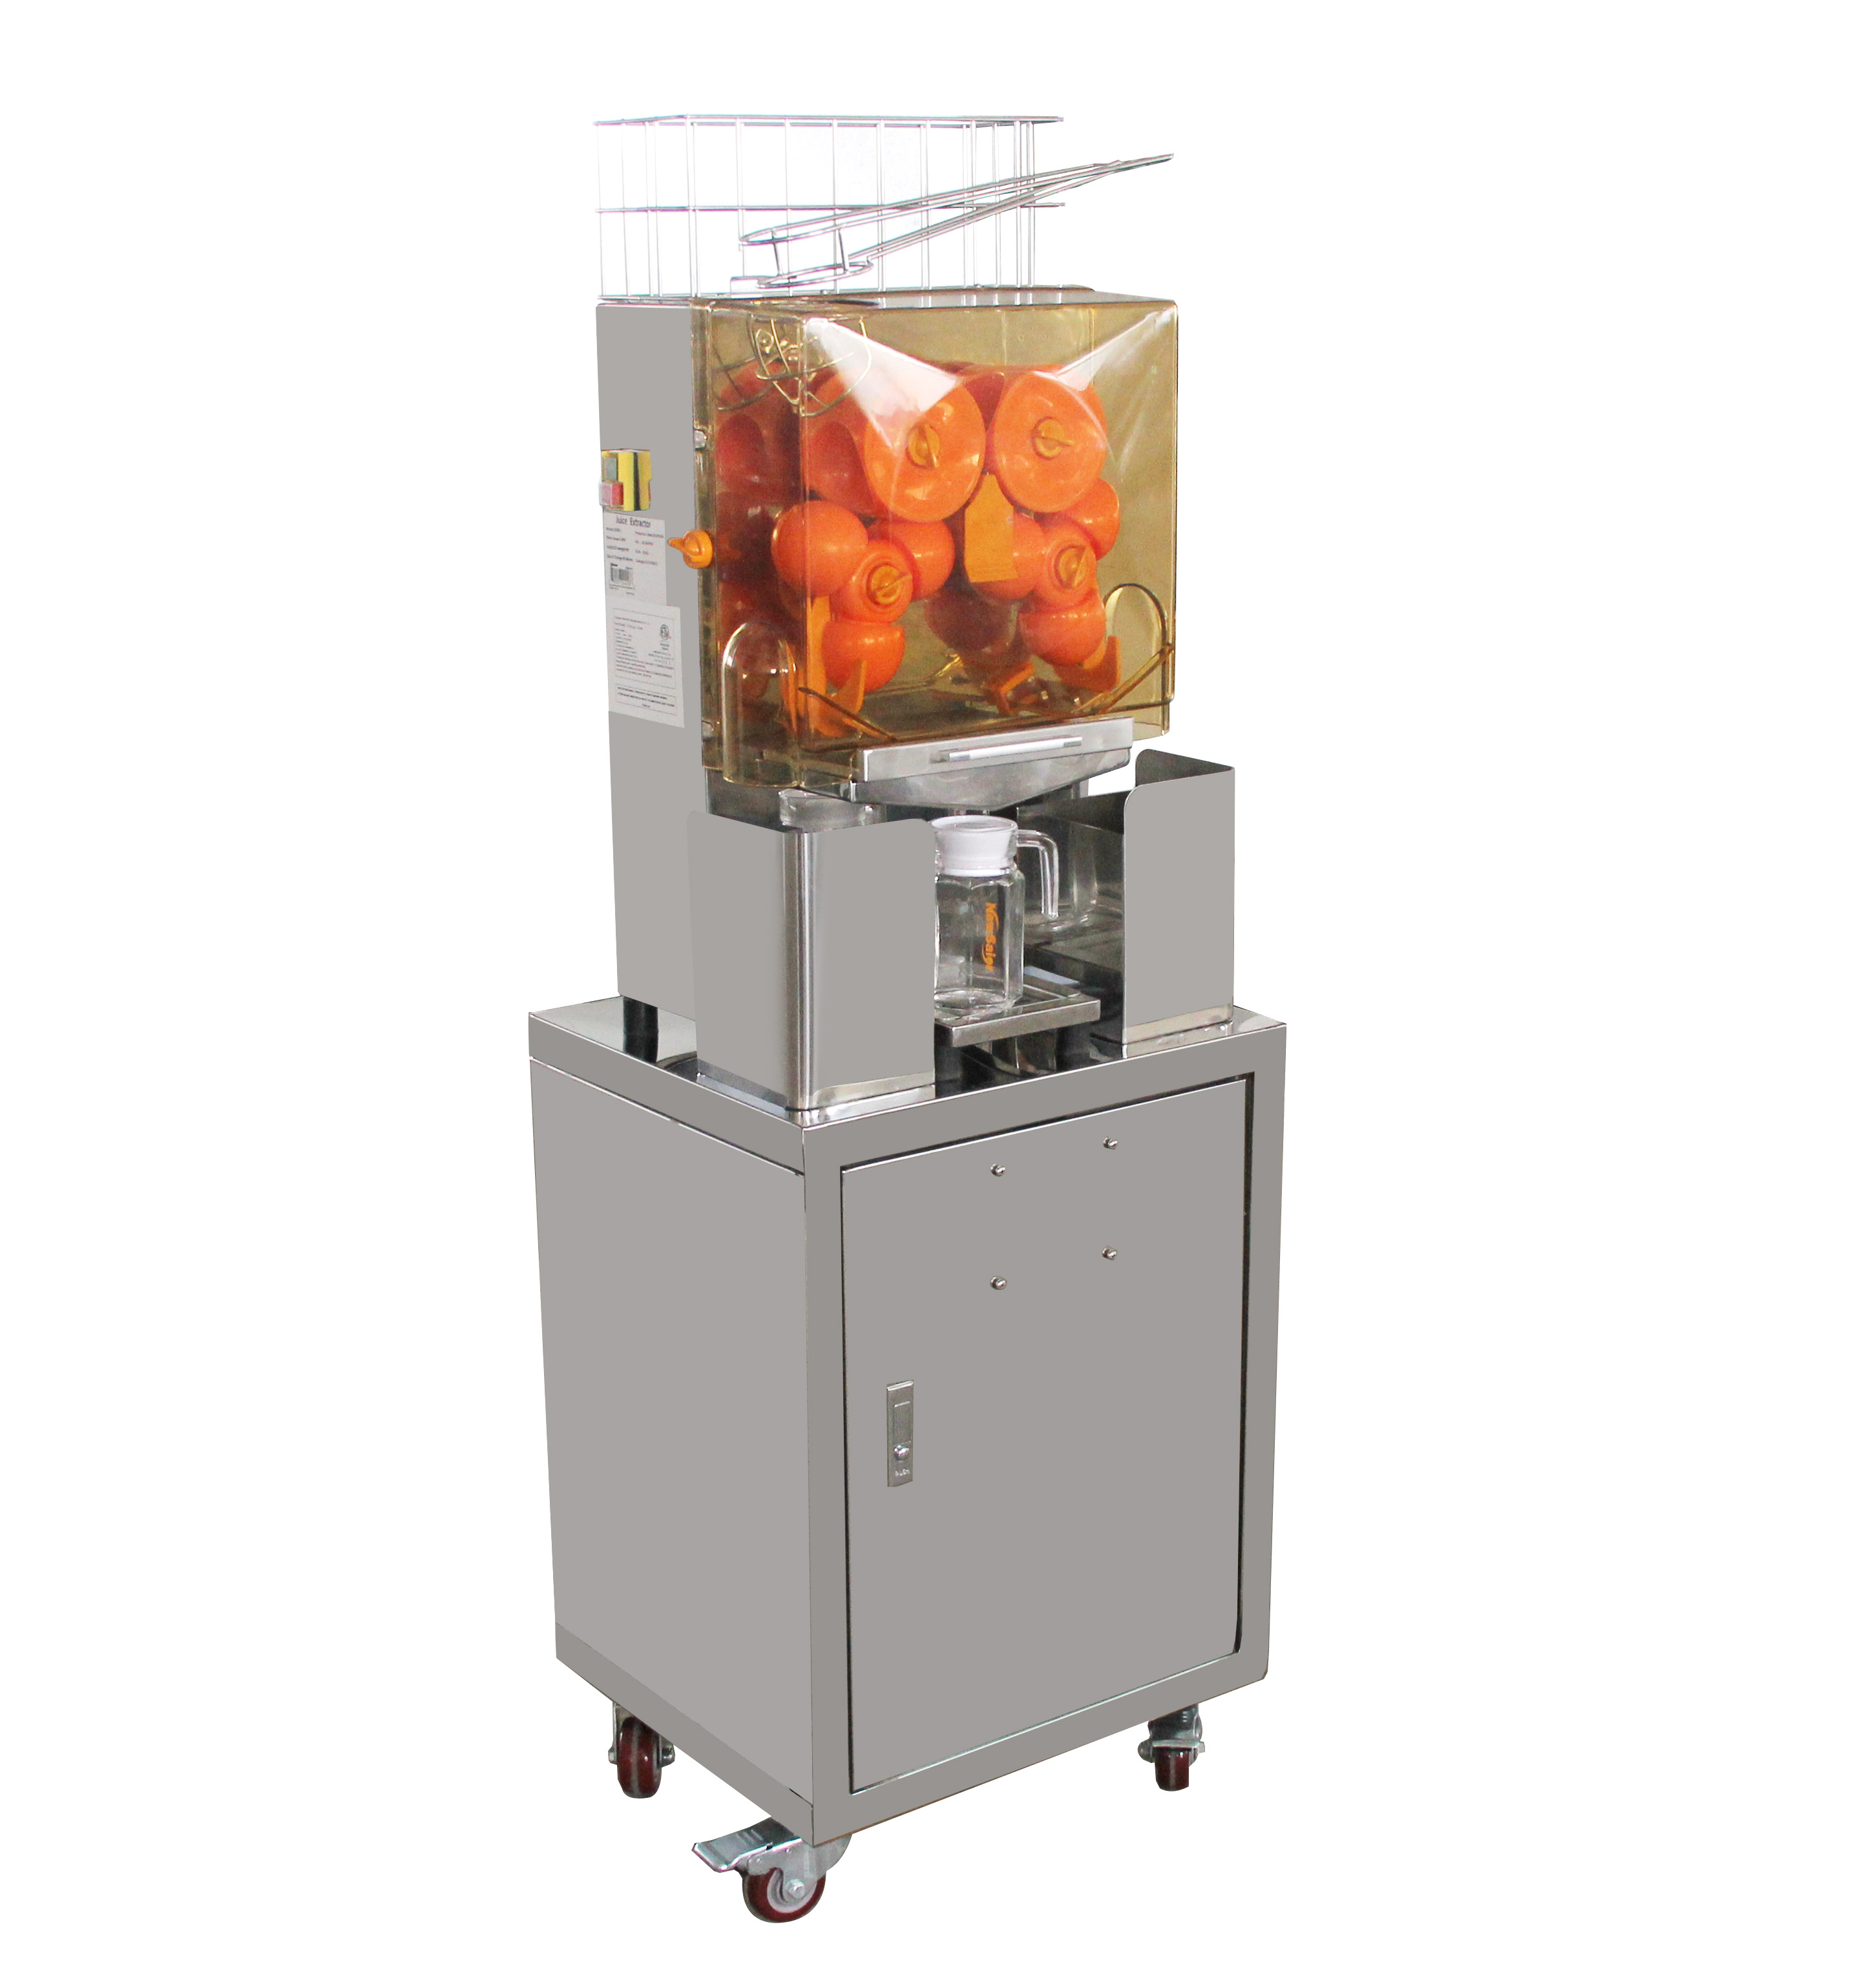 Omcan JE-CN-0020 food equipment > juice extractors > citrus juicers|food equipment > juice extractors